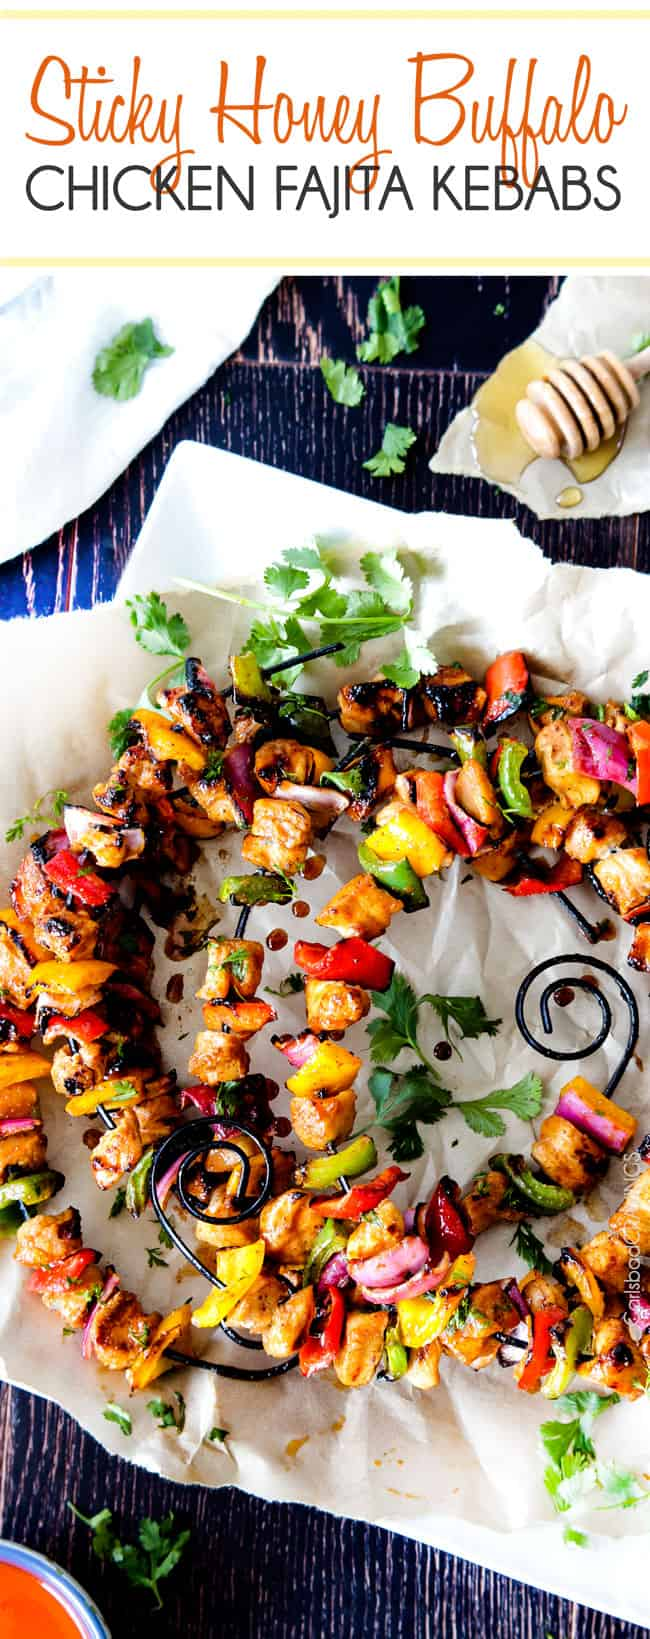 Honey Buffalo Chicken Fajita Kebabs on skewers.